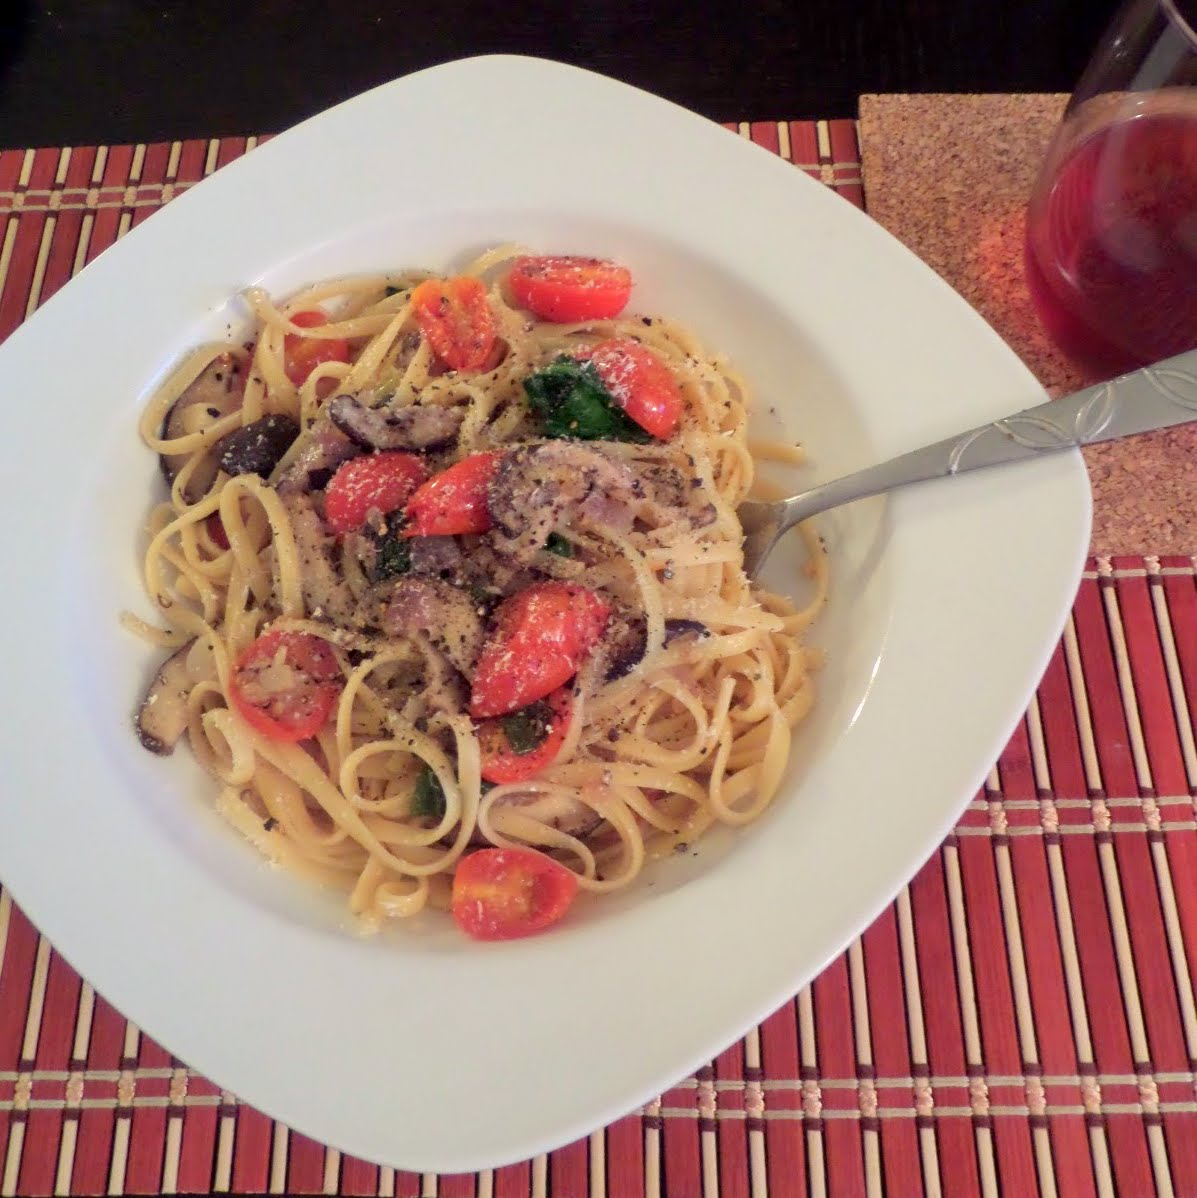 Mushroom Spinach Tomato Pasta:  Linguine noodles in a light white wine and garlic sauce tossed with mushrooms, spinach and grape tomatoes.